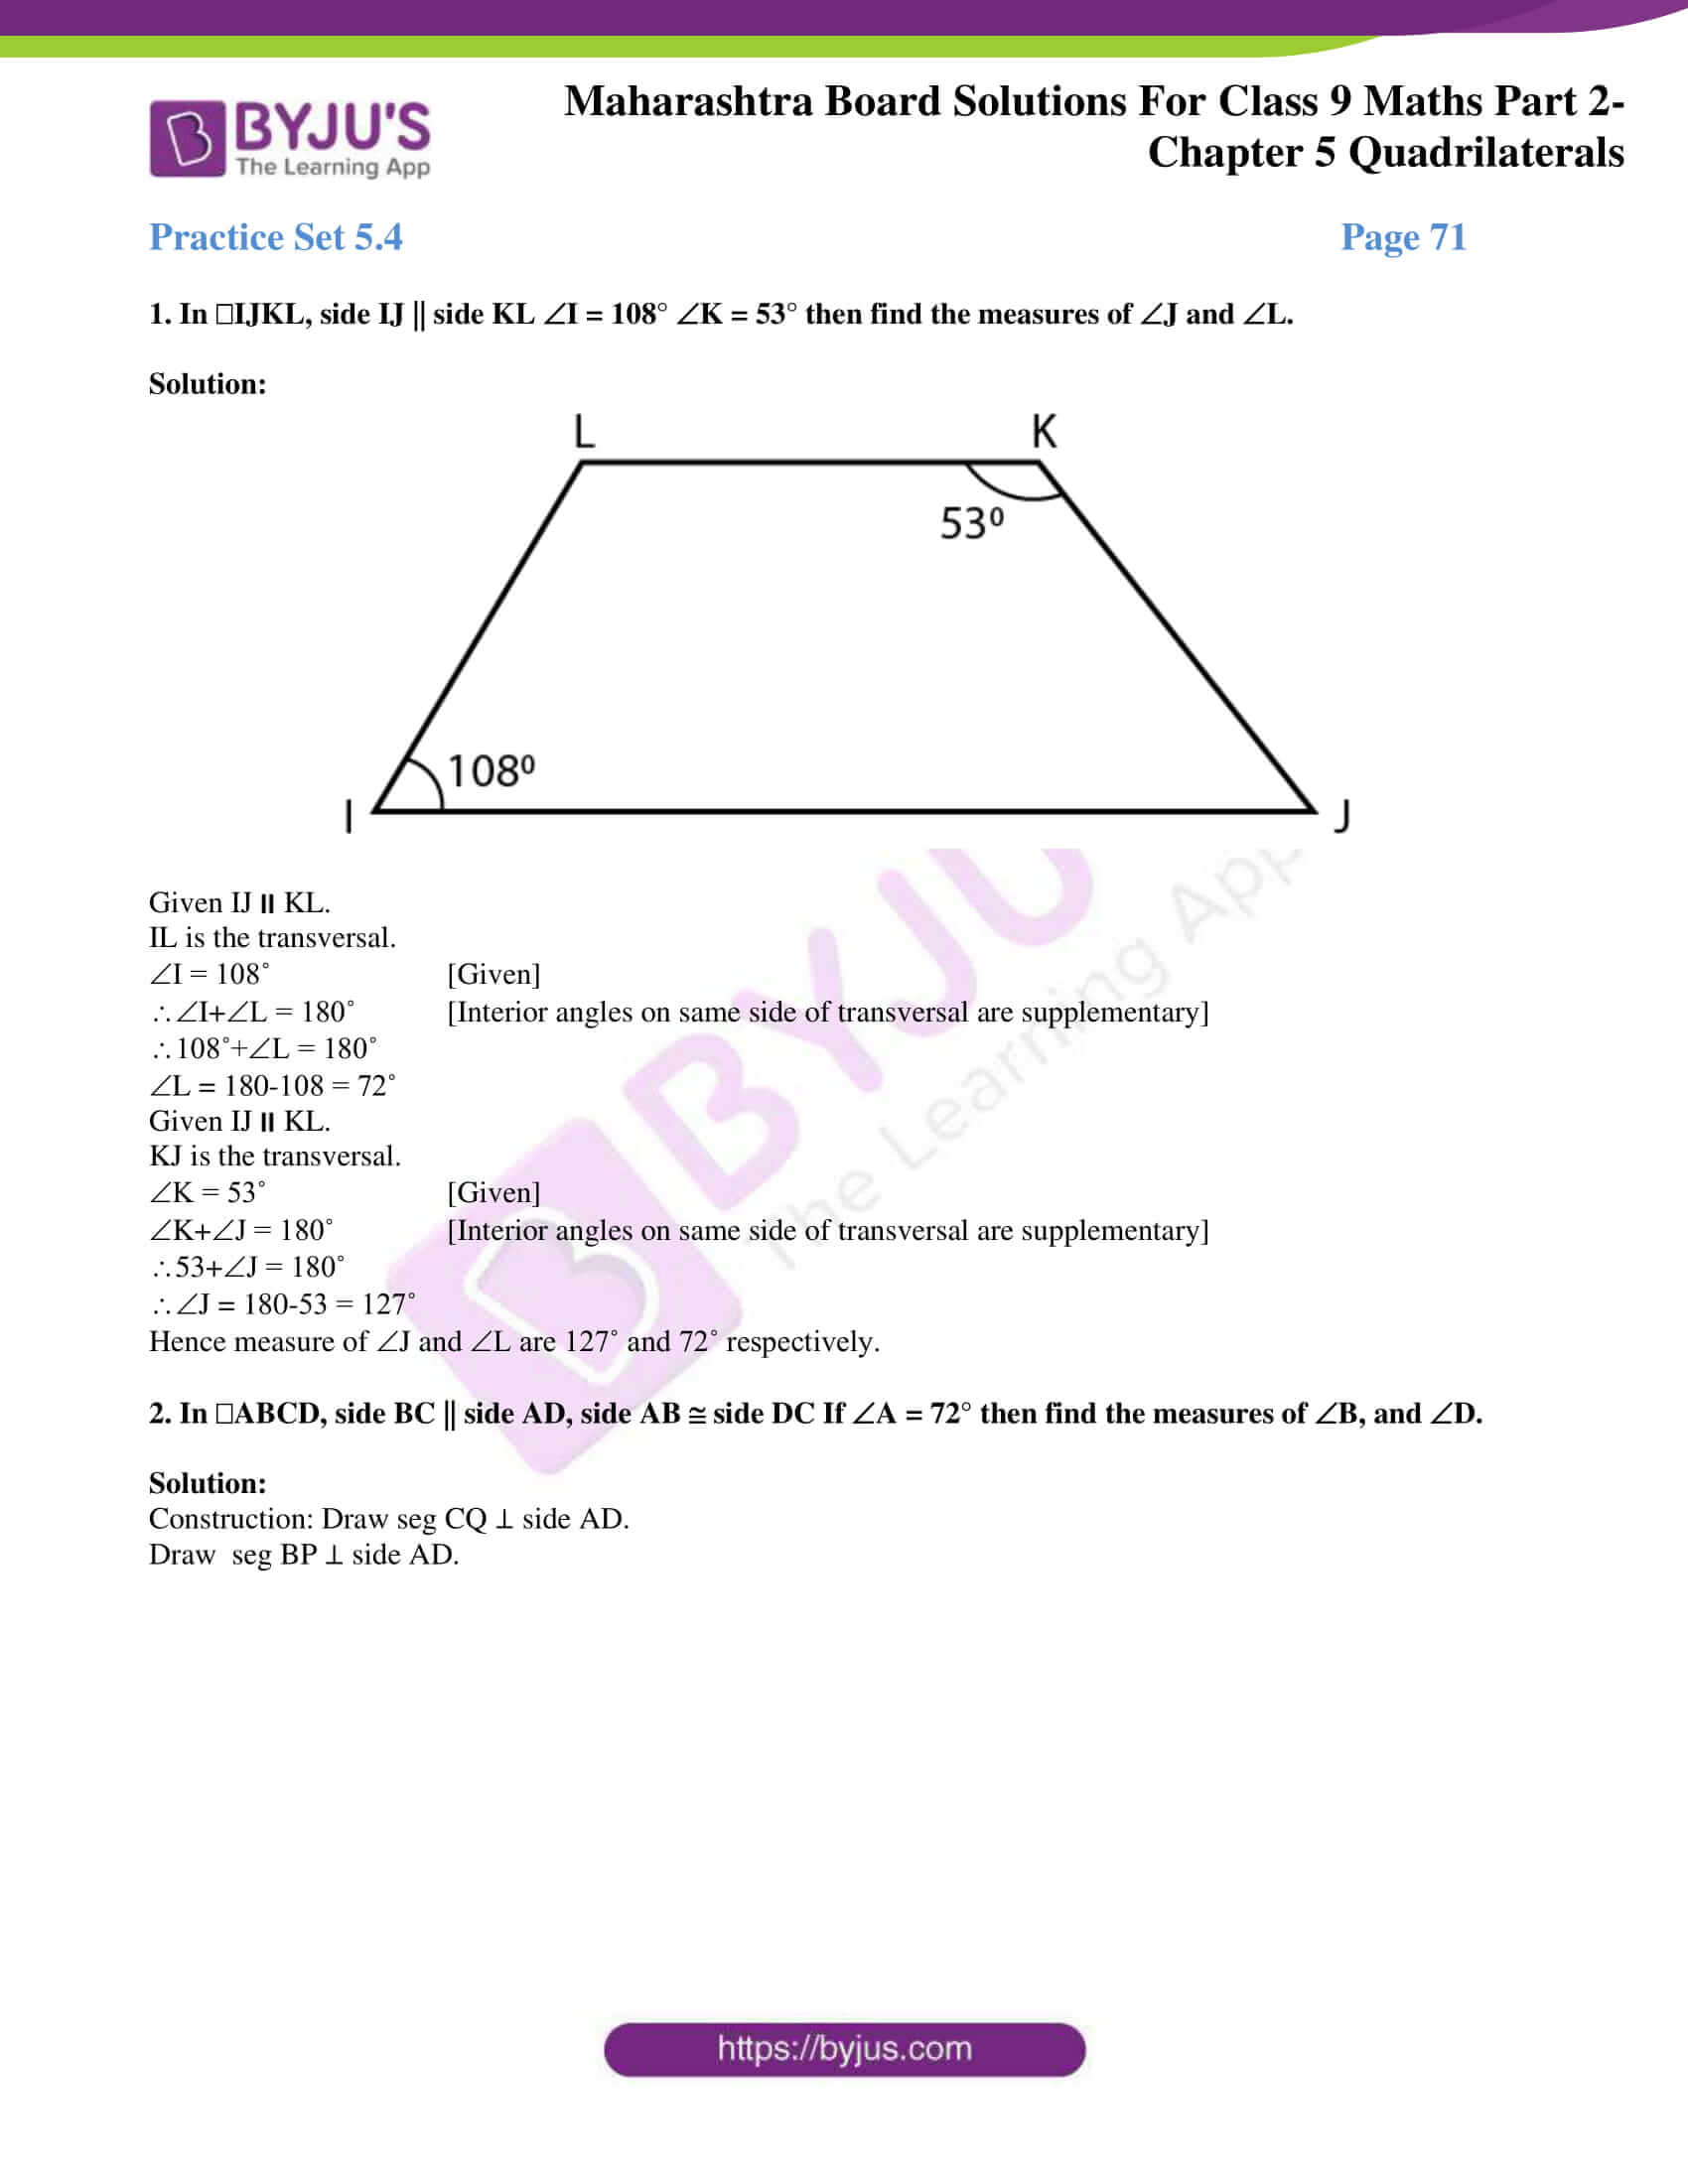 msbshse solutions for class 9 maths part 2 chapter 5 14